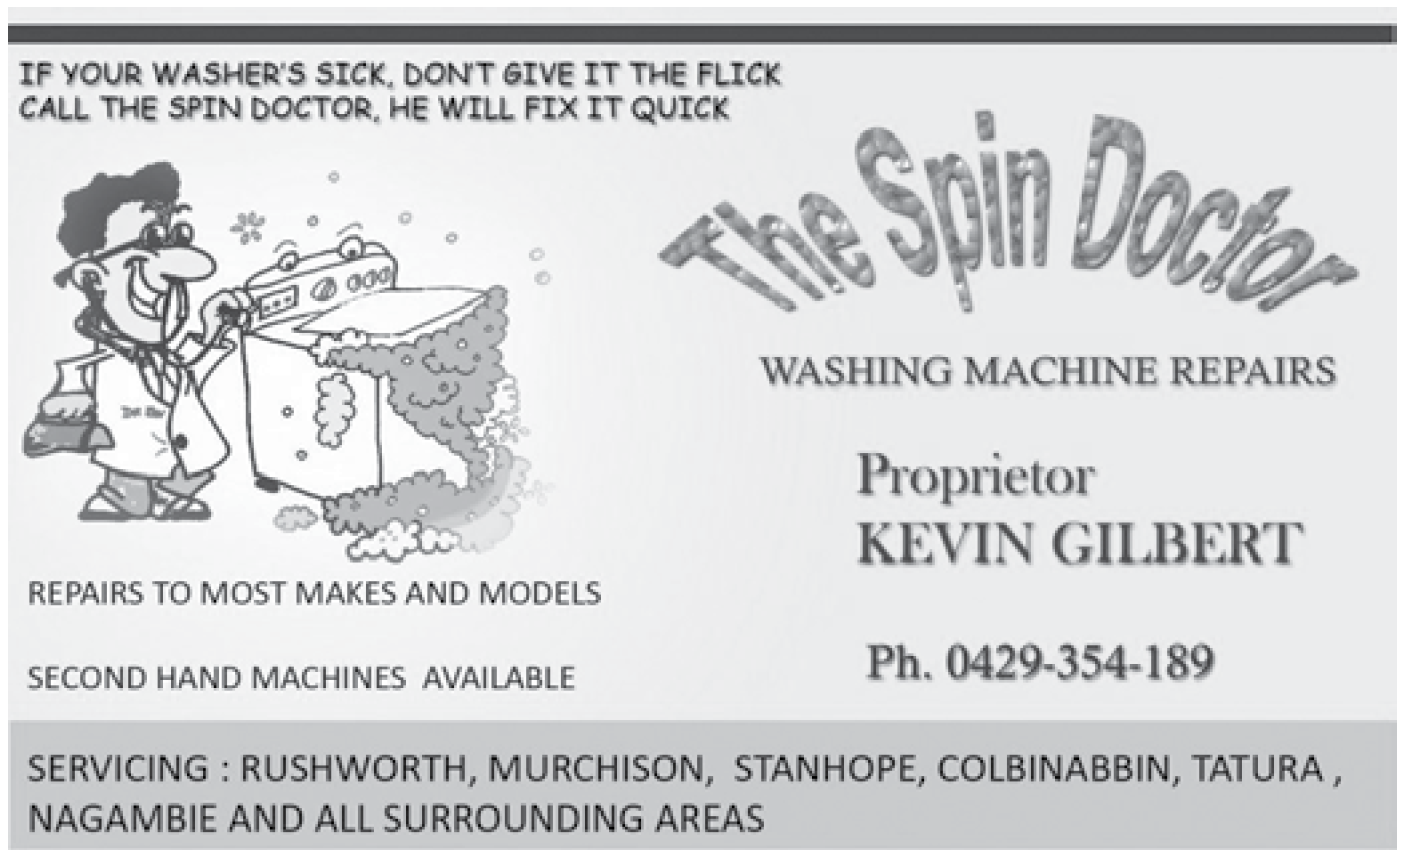 The Spin Doctor image